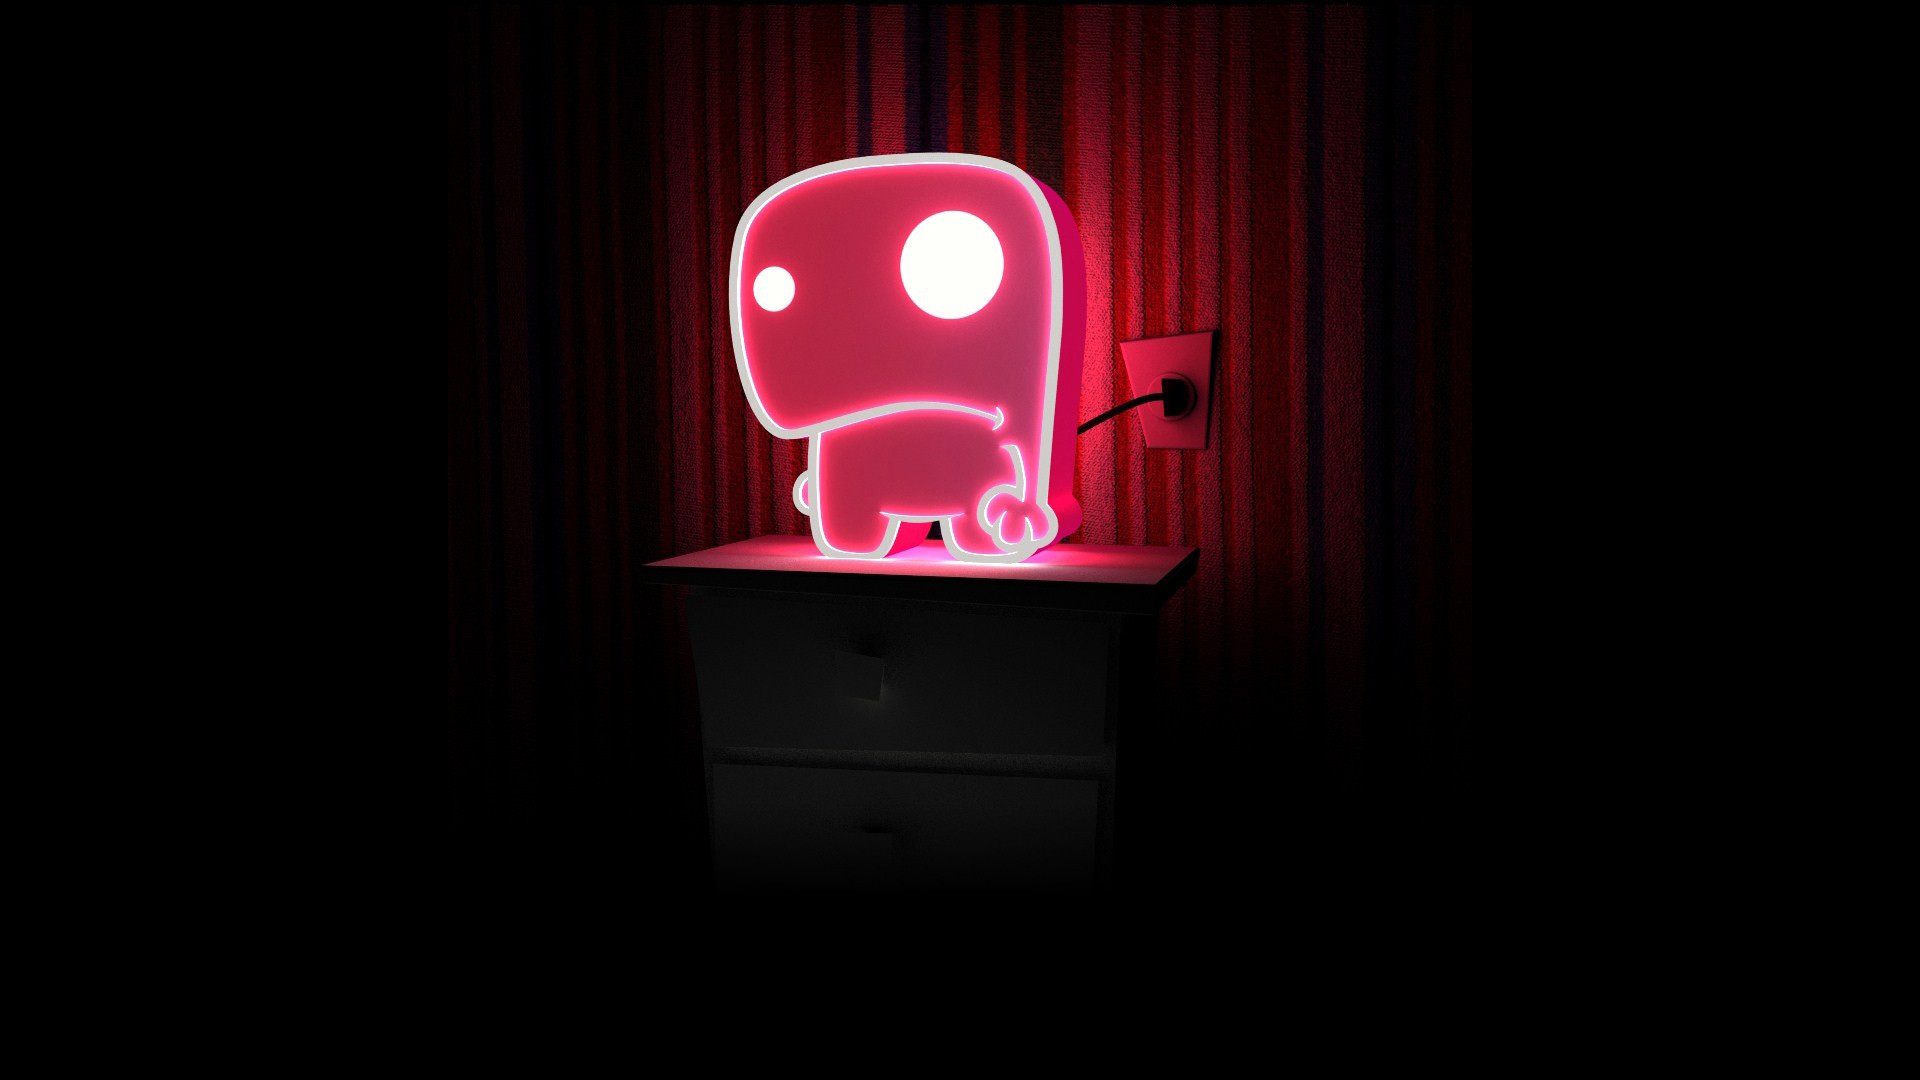 Cute Neon Backgrounds 183 ① Wallpapertag